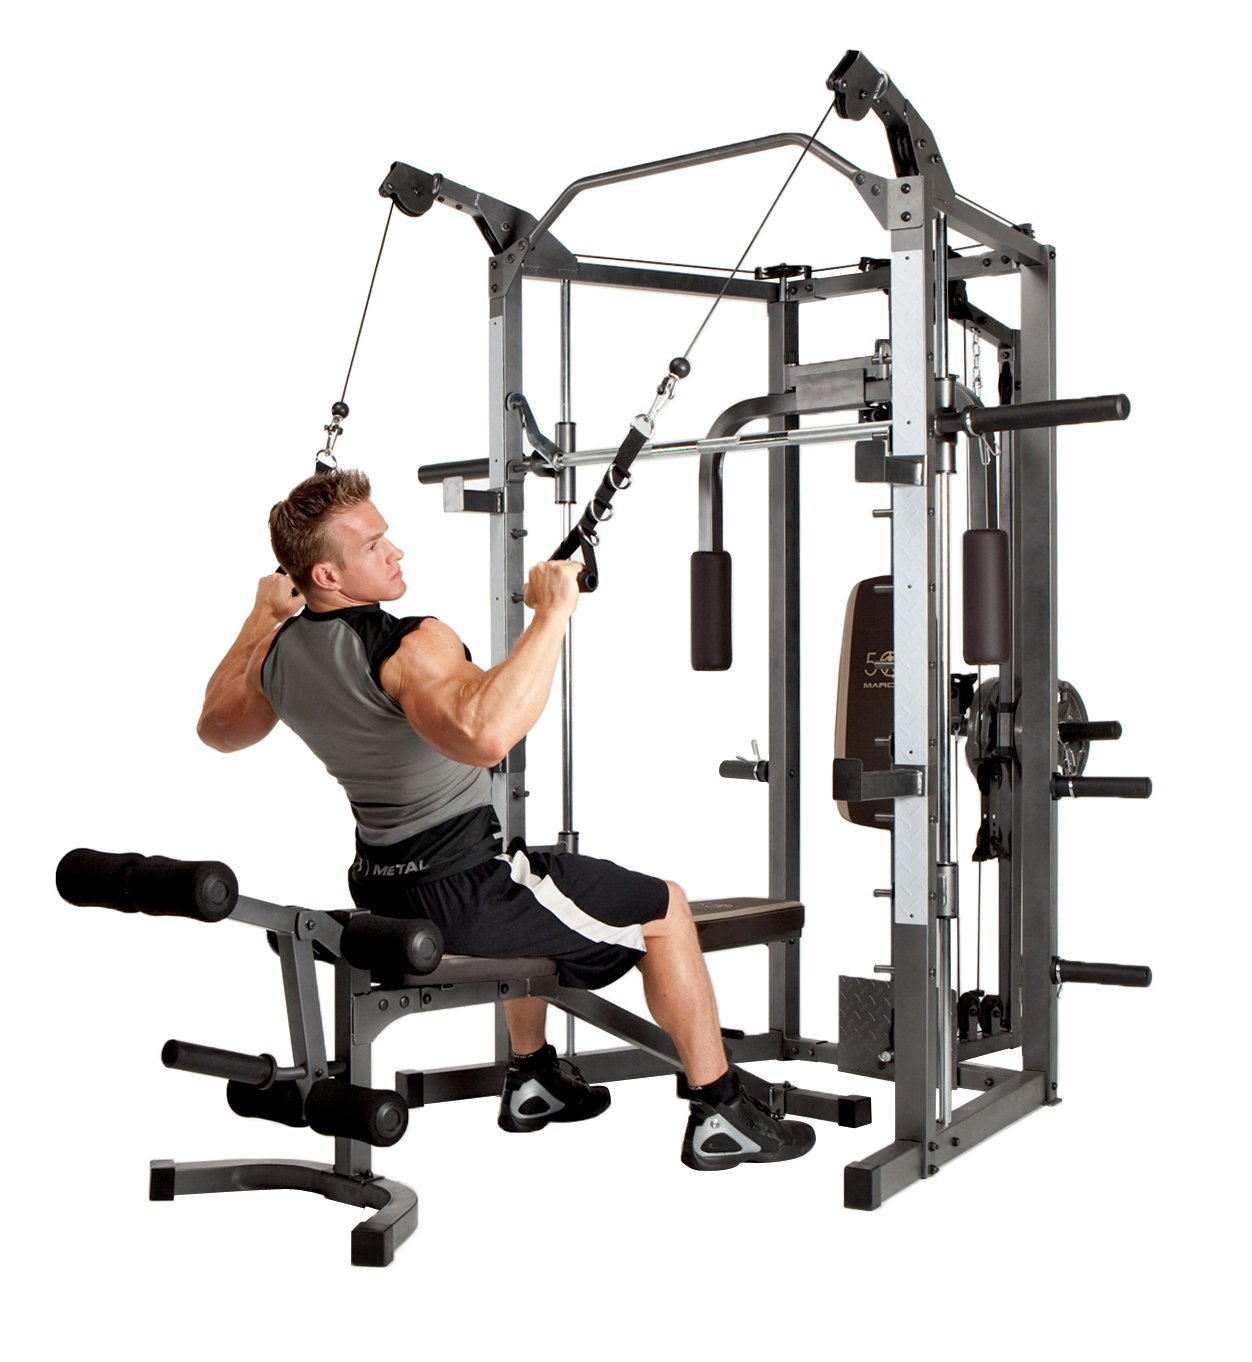 Marcy Smith Machine with Bench and Weight Bar – Home Gym Equipment SM-4008 by Marcy (Image #2)